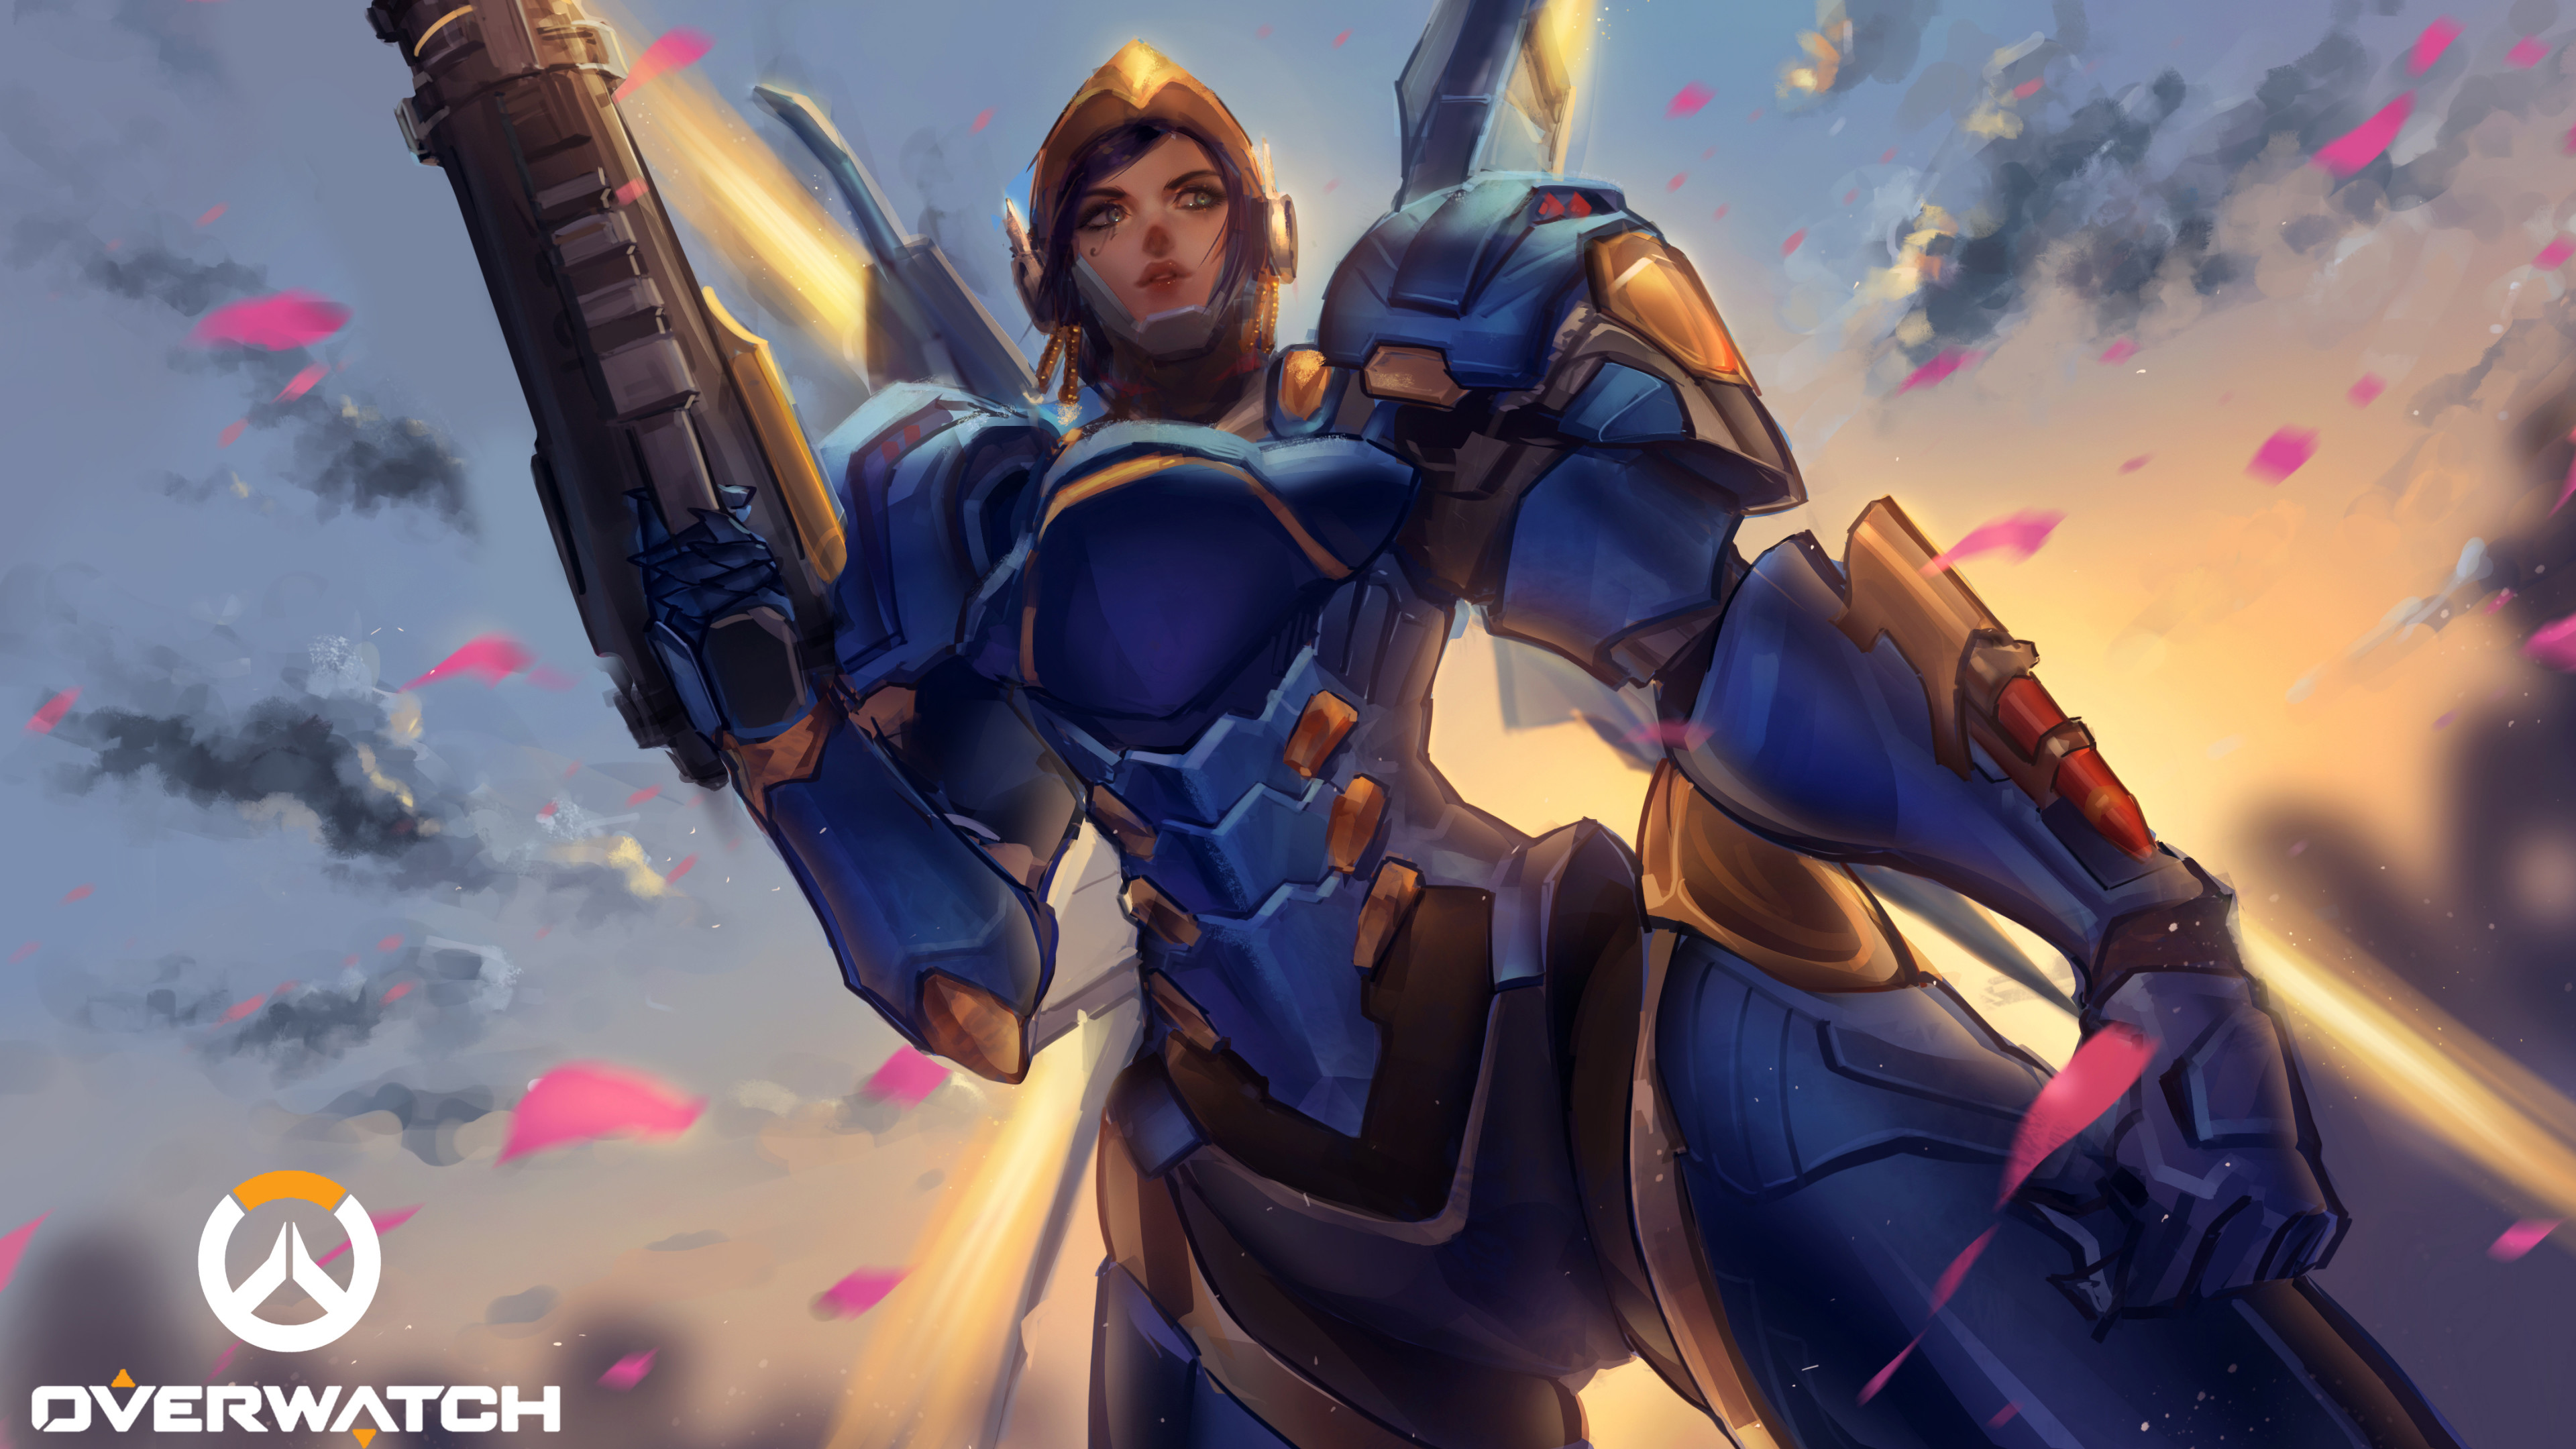 Pharah wallpapers 77 background pictures - Overwatch wallpaper 4k ...